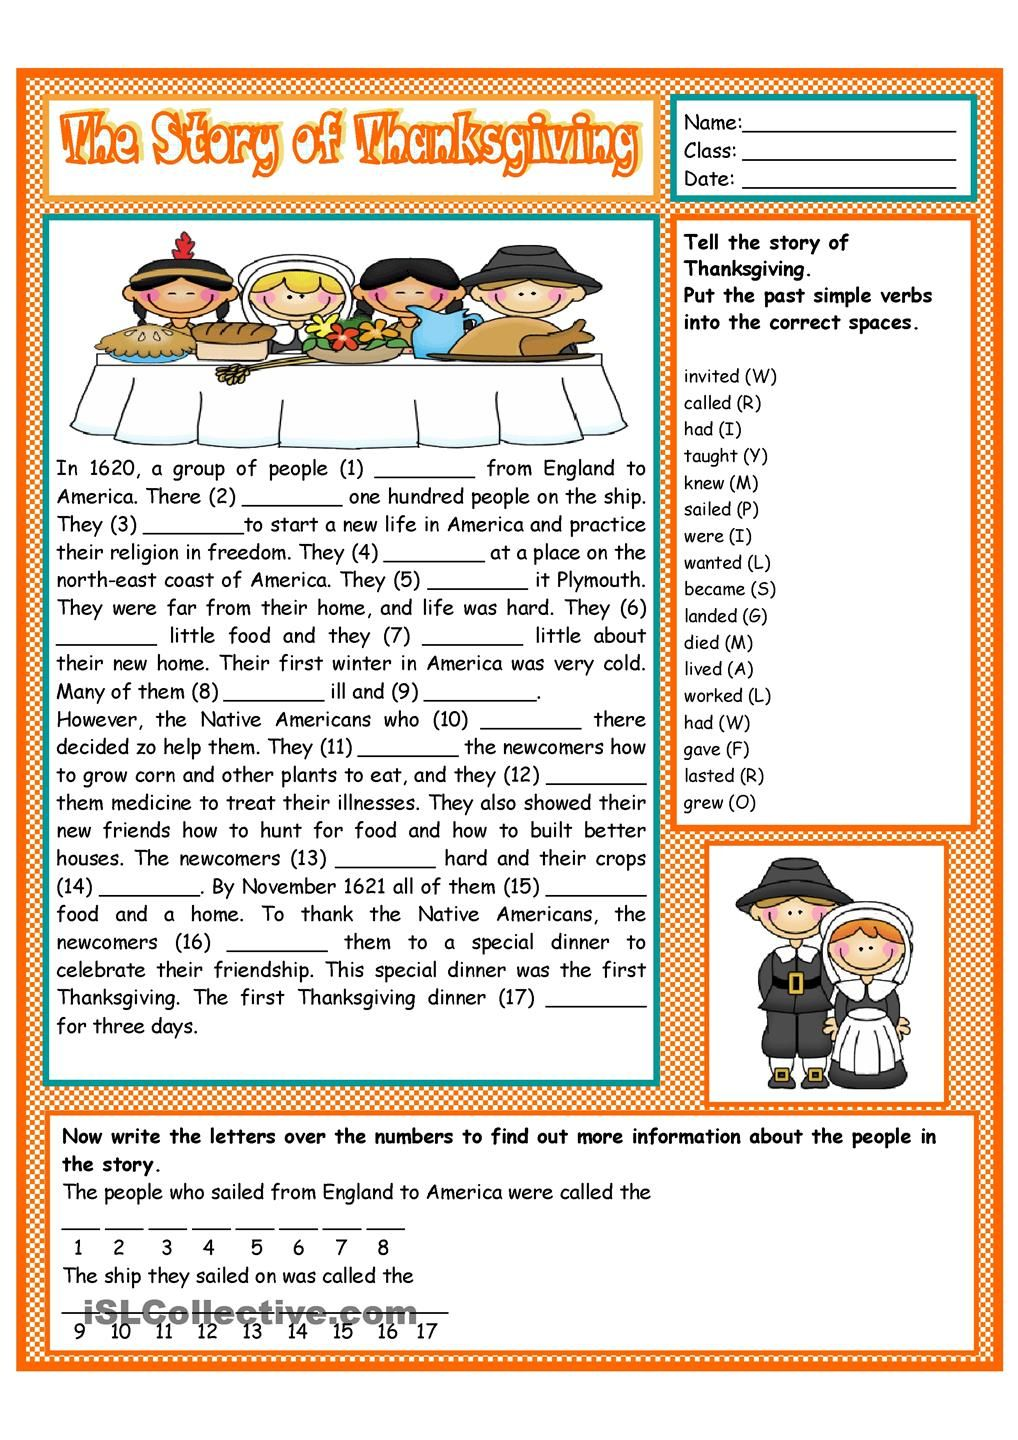 The Story of Thanksgiving   Thanksgiving reading comprehension [ 1440 x 1018 Pixel ]